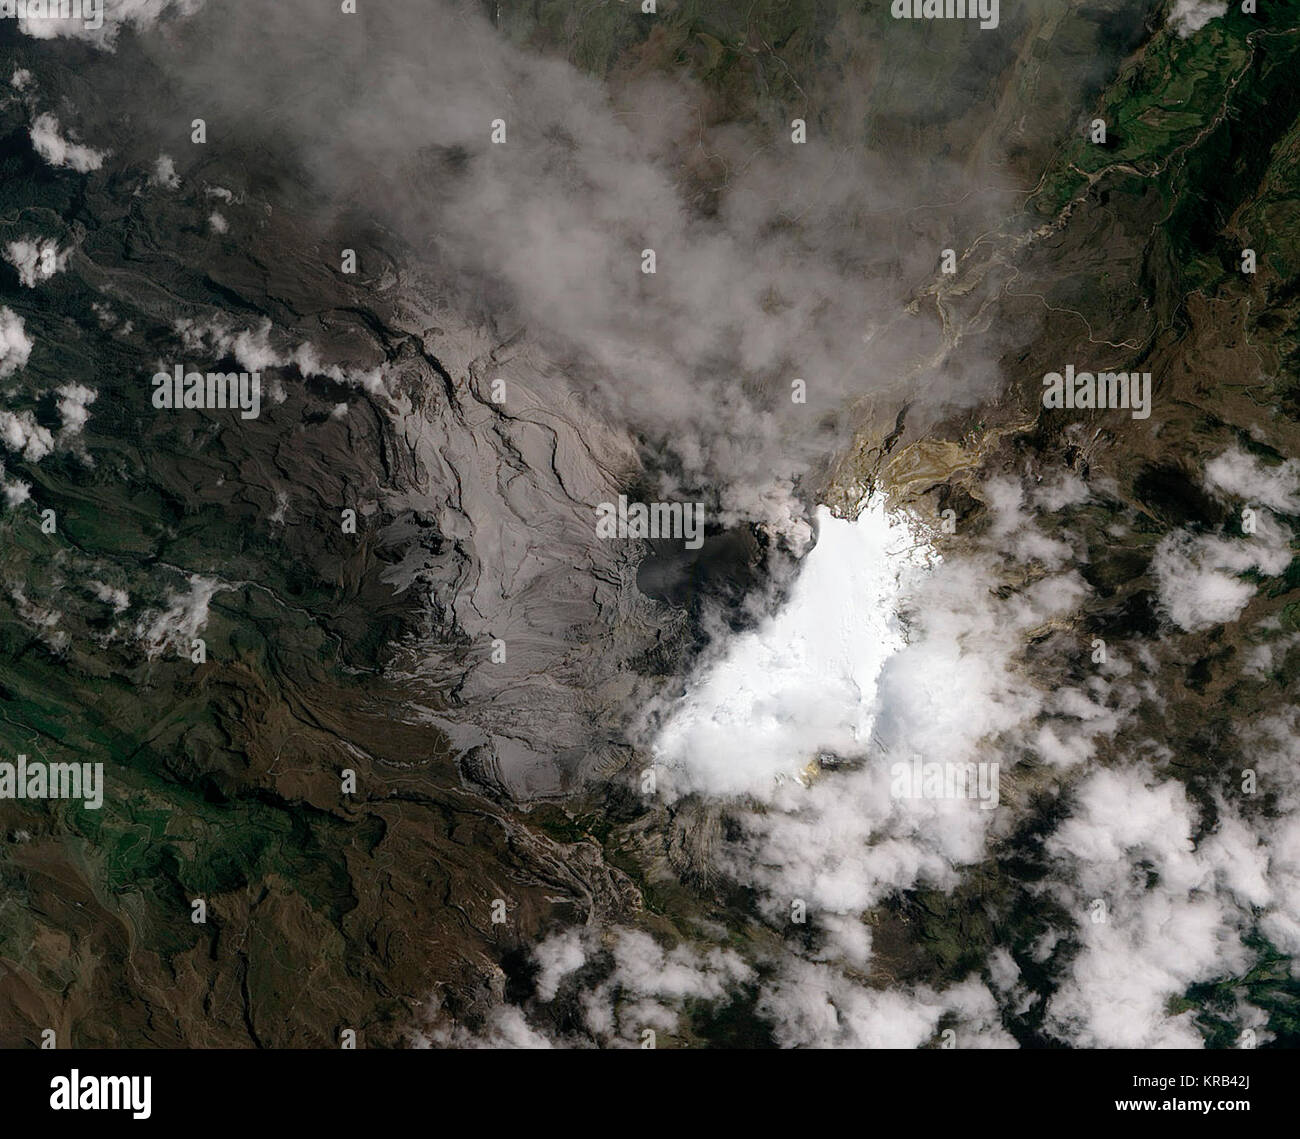 Eruption of Nevado Del Ruiz  Nevado del Ruiz Volcano, infamous for its deadly lahars, sprang to life in March 2012. - Stock Image